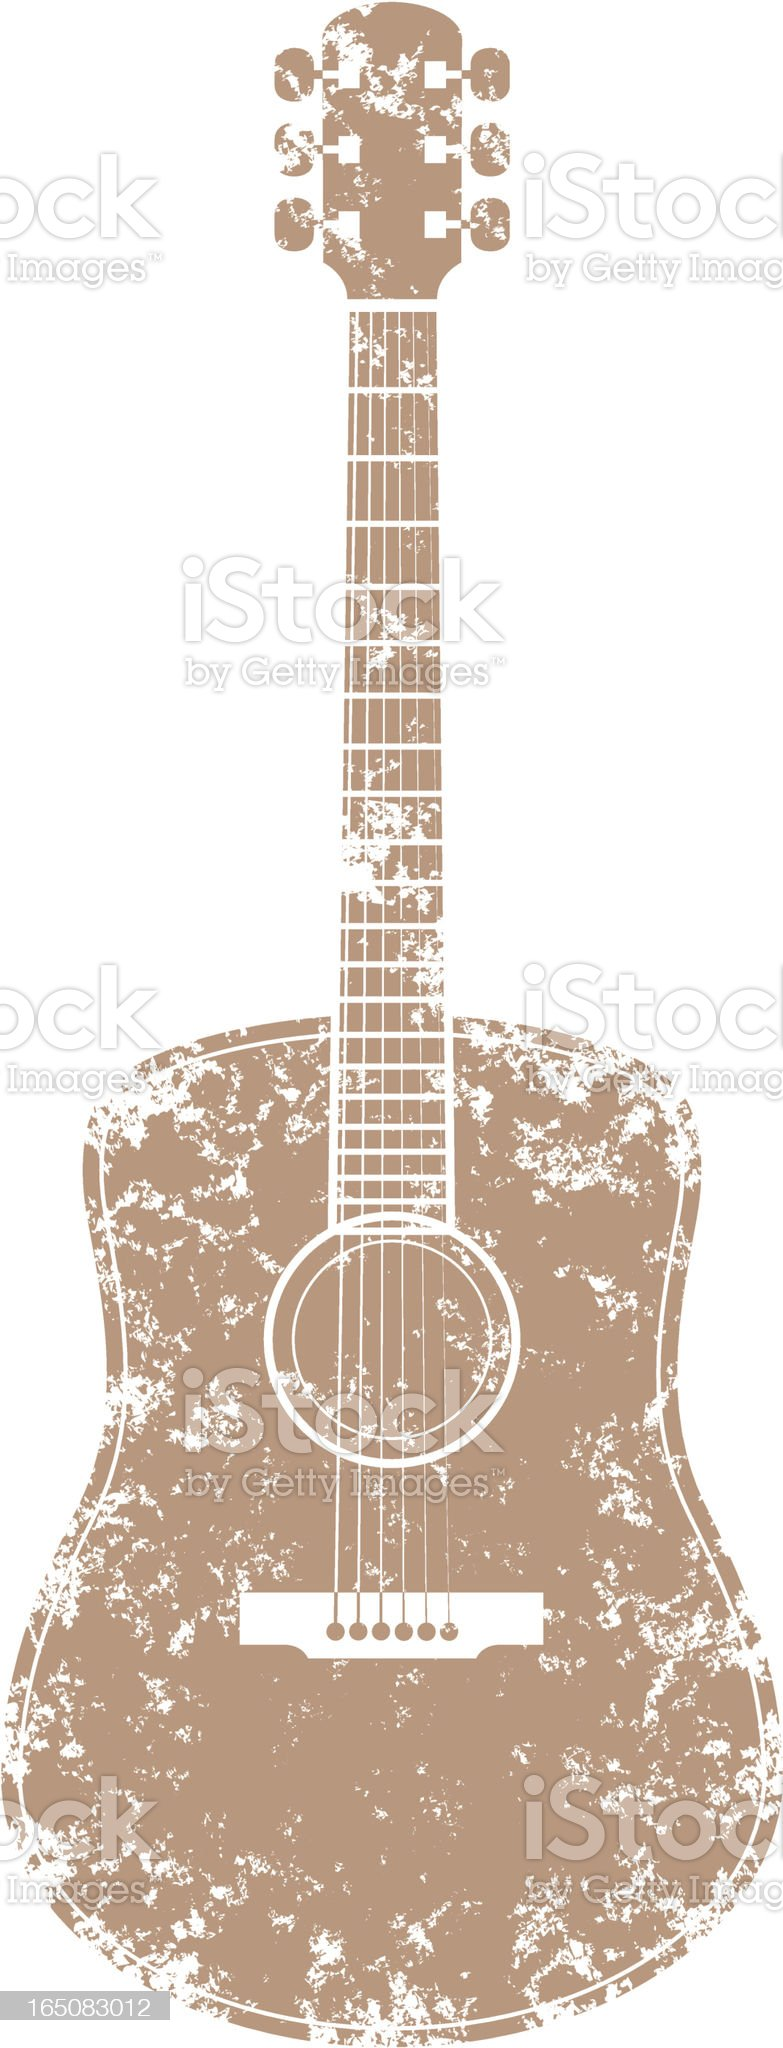 Grunge guitar two royalty-free stock vector art